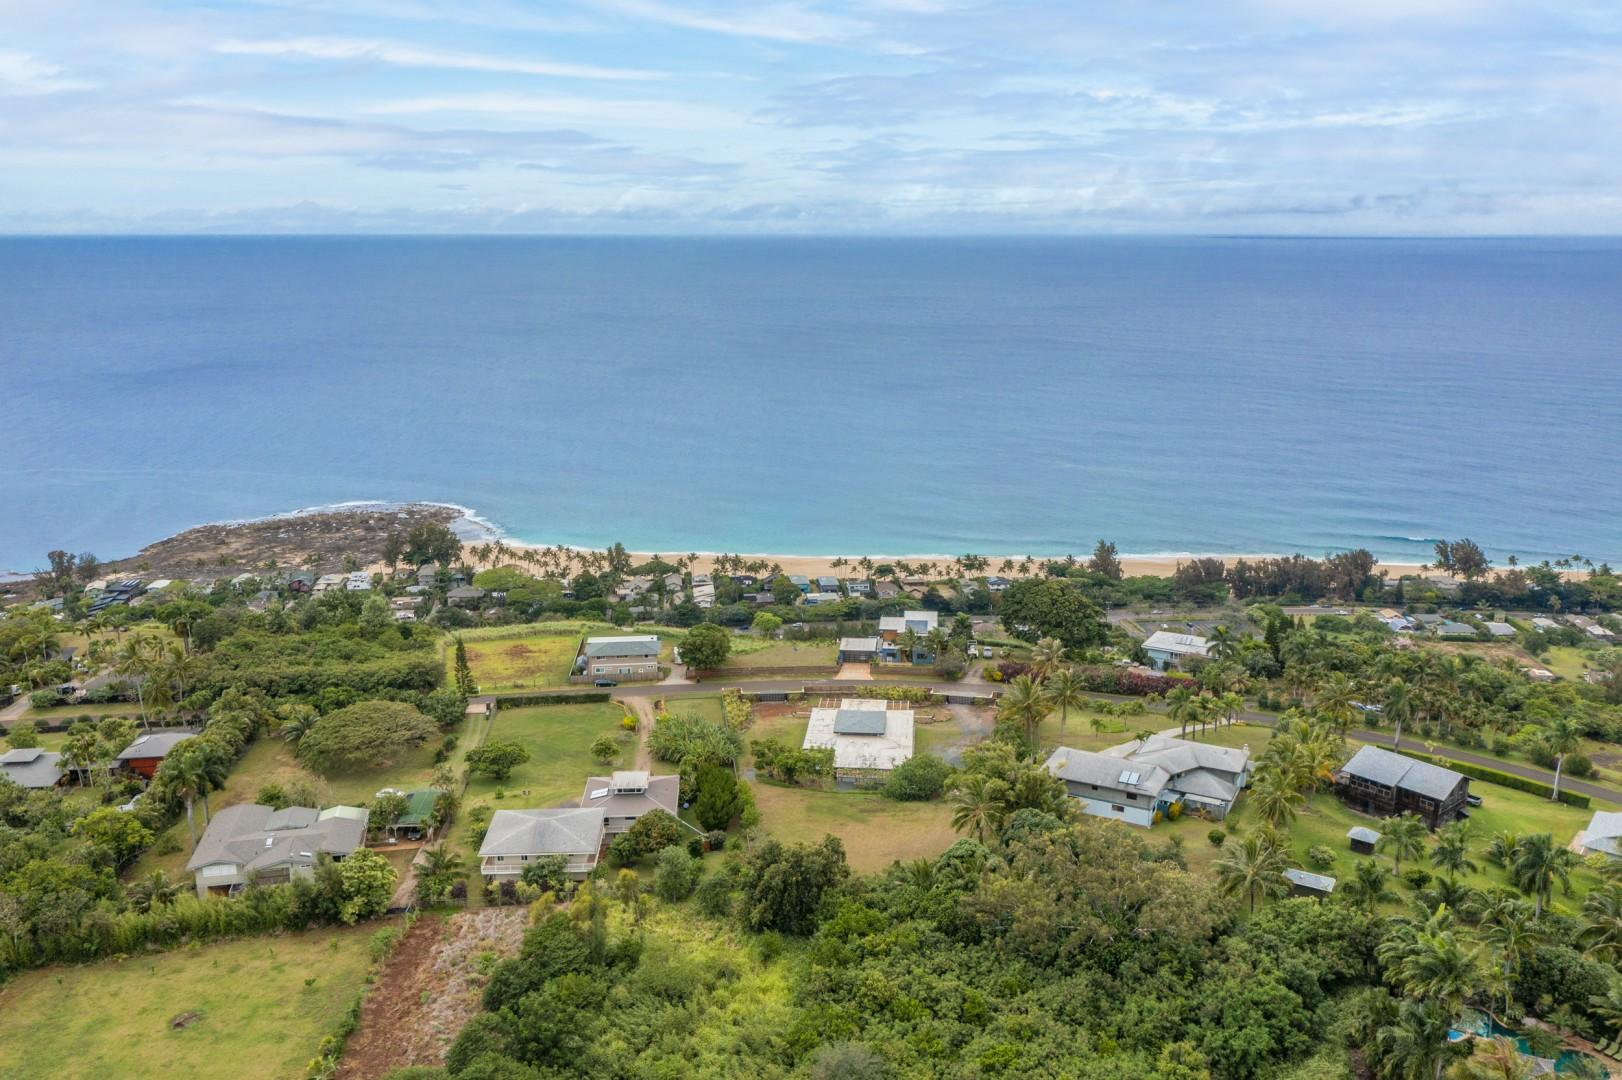 Hale Mahina is located on a half acre of land, in a private neighborhood, about 5 minutes drive from the ocean.